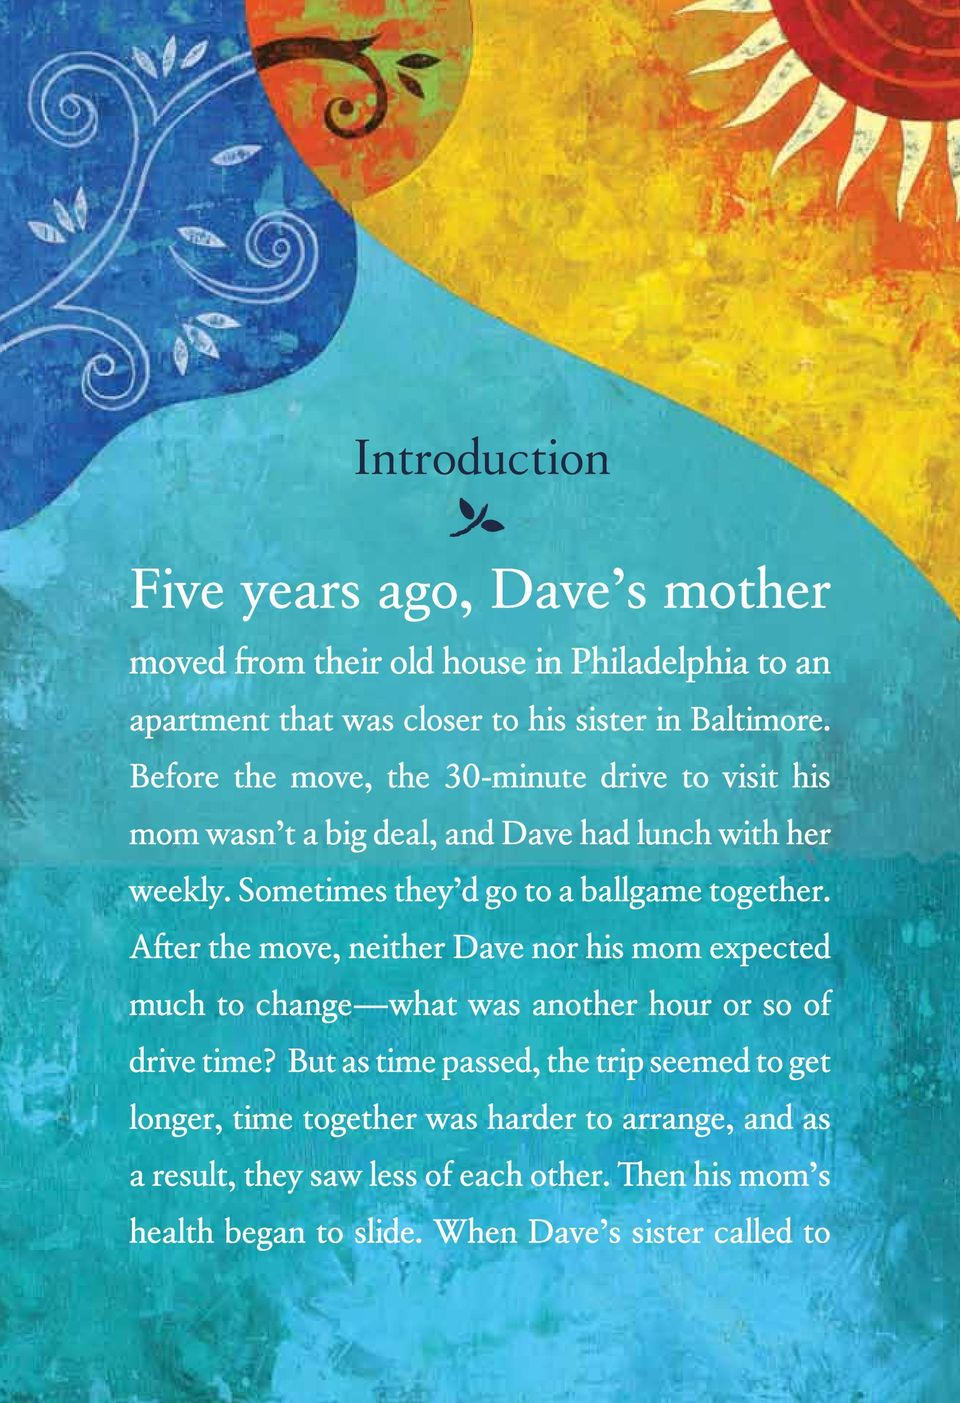 After the move, neither Dave nor his mom expected much to change what was another hour or so of drive time?